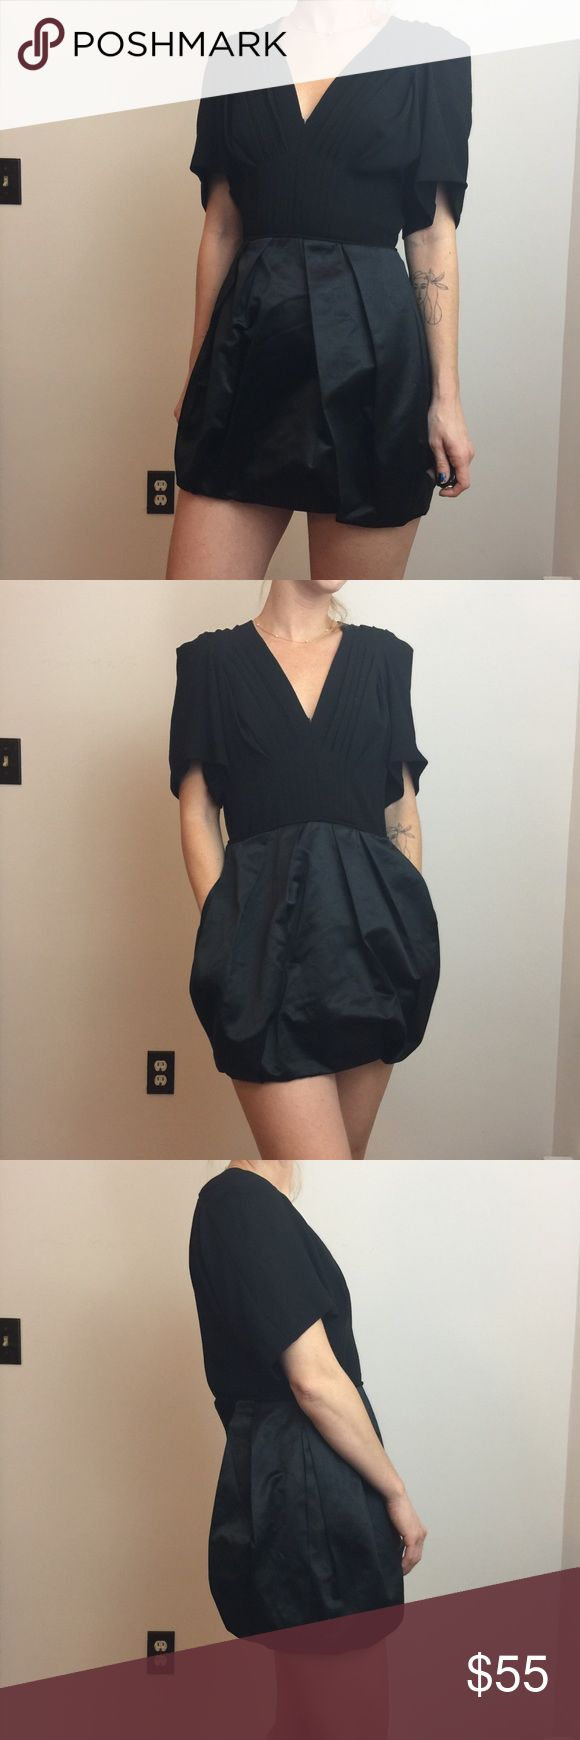 BCBGMaxAzria Runway Black Satin Bubble Hem Dress BCBGMaxAzria Dress so cute has some light tear along the center seam but is an easy fix. Not noticeable. So stunning. I'm 5'5 and it's super short on me. Best for shorter gals. BCBGMaxAzria Dresses